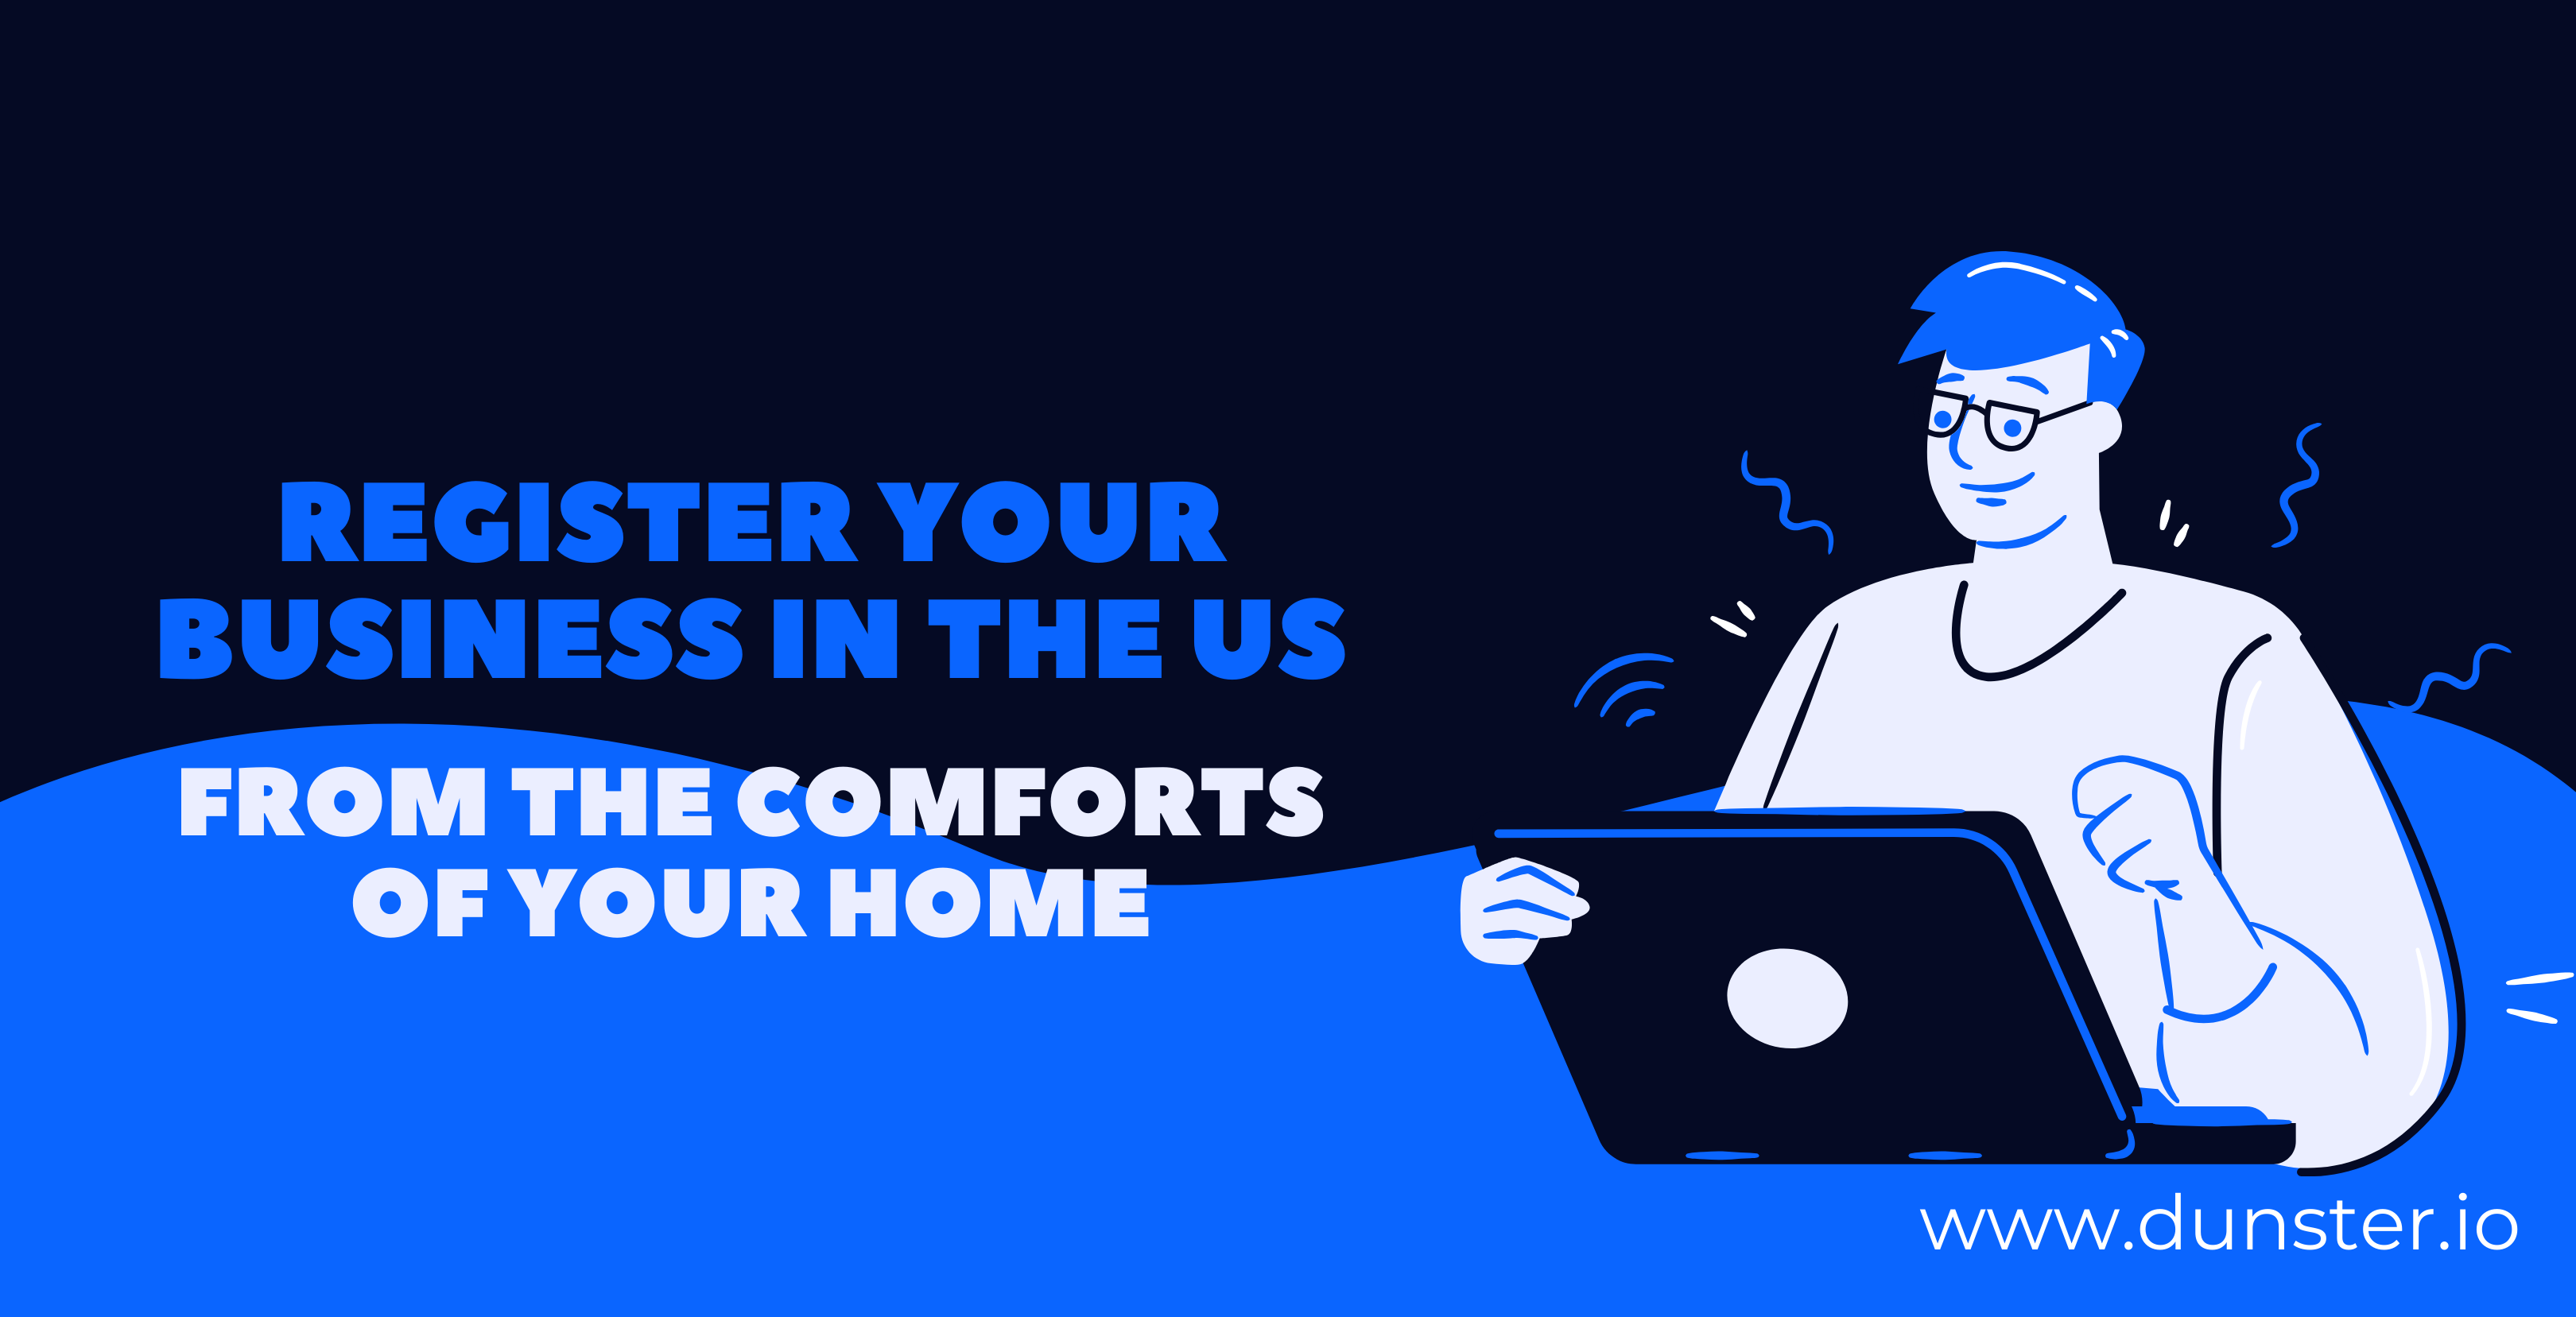 Company registrations can be tough. With Dunster you can register companies from anywhere. The best, safest, fastest, and easiest way to form us companies.